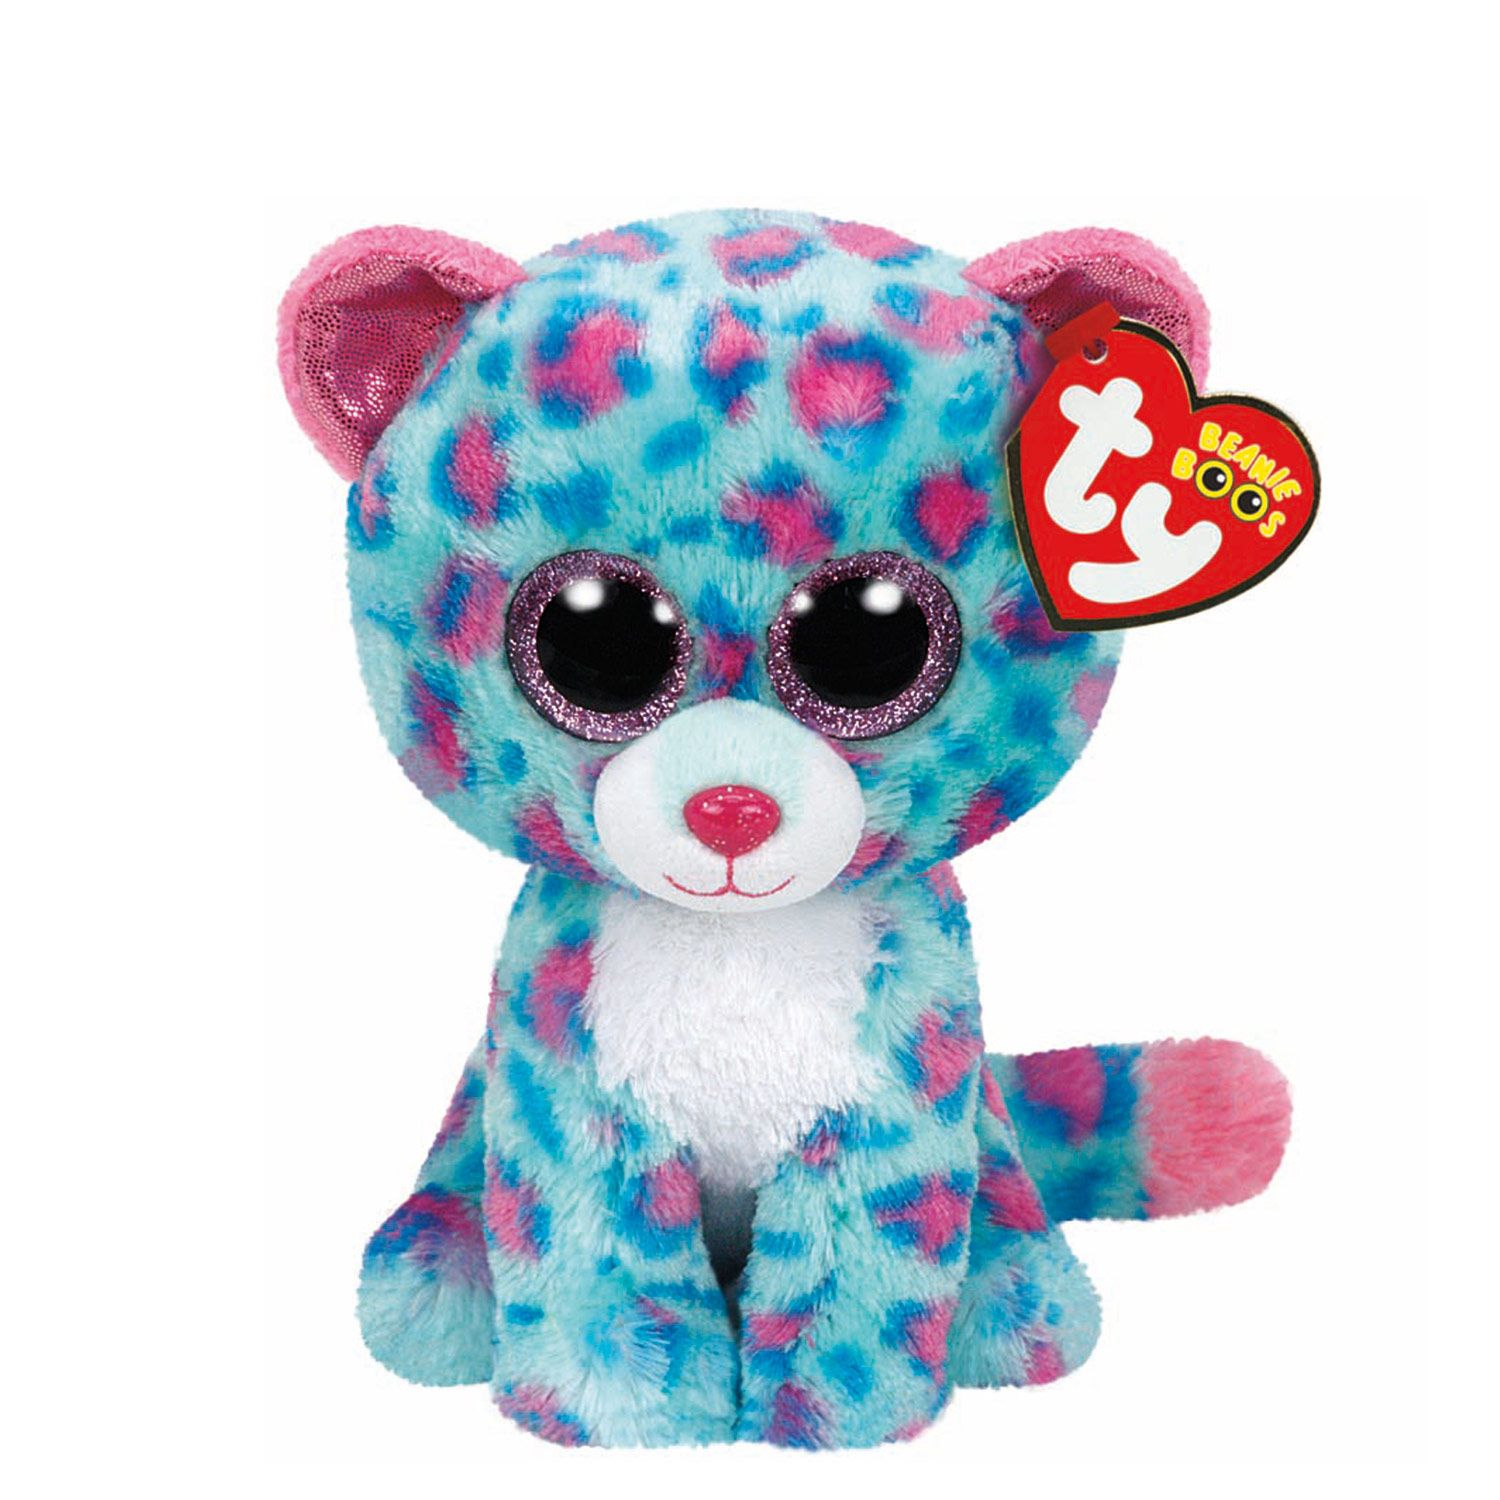 670ba0cf375 TY Beanie Boos Small Sydney the Kitten Soft Toy